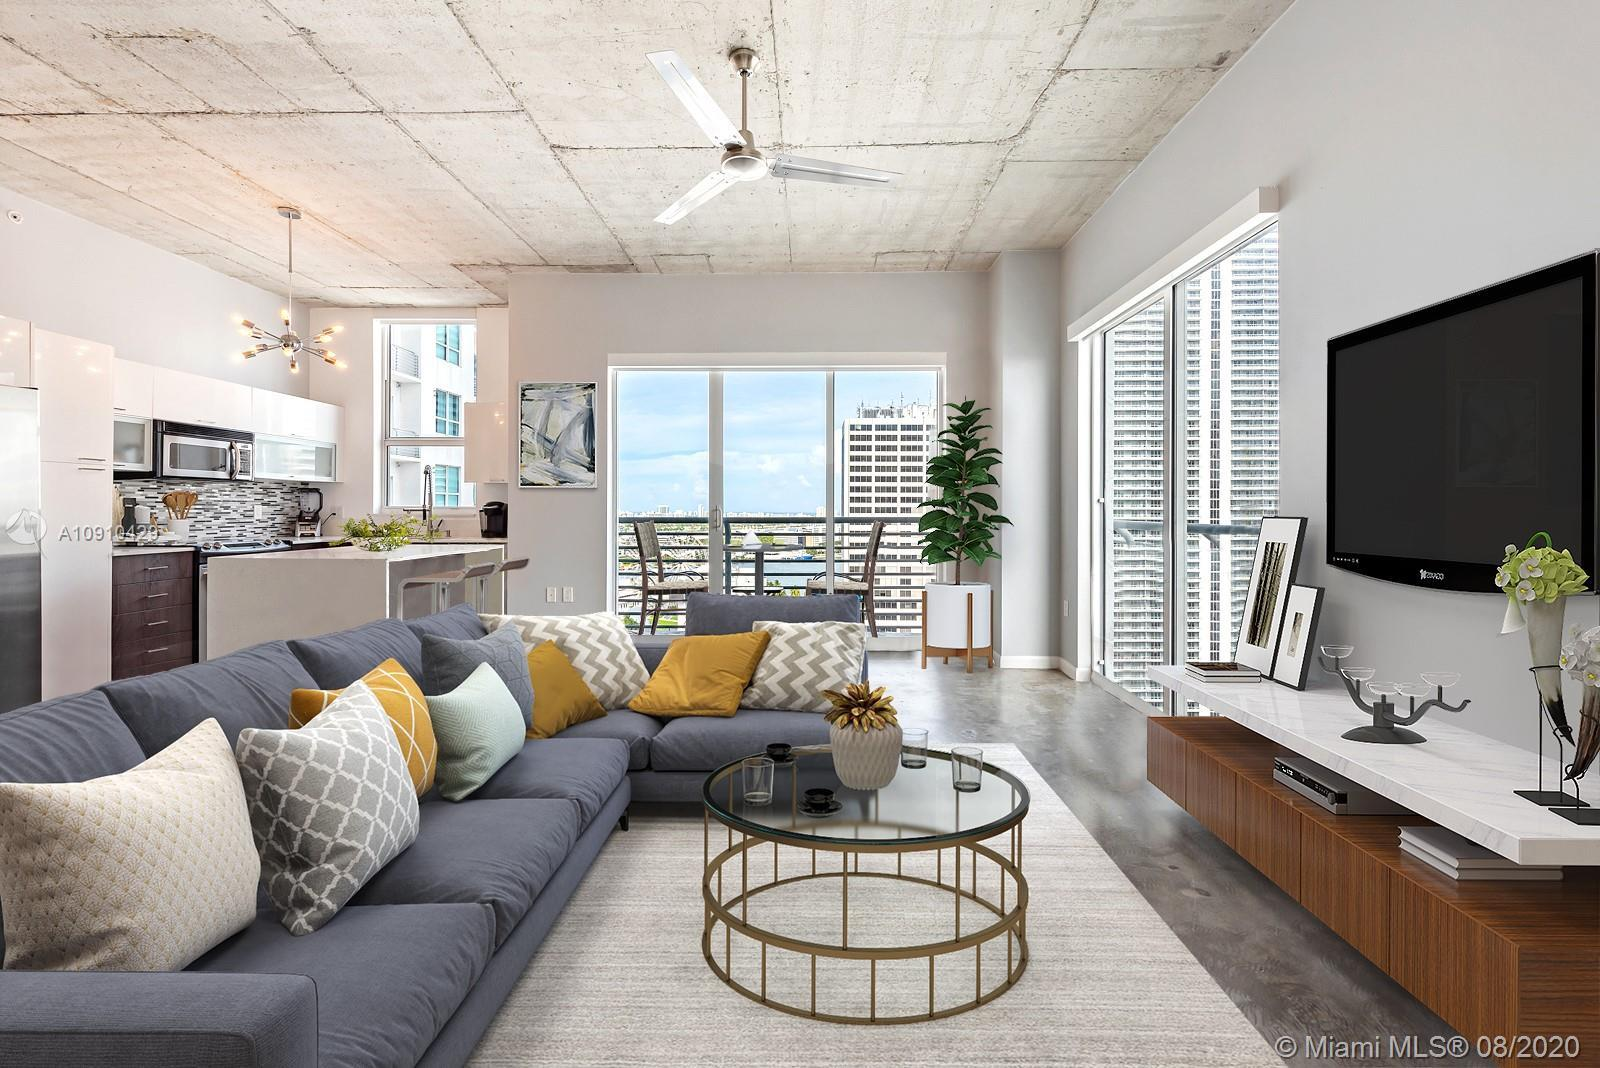 Downtown Miami meets Wynwood Glam! Gorgeously redone 2 bedroom 2 bath corner condo in this booming d